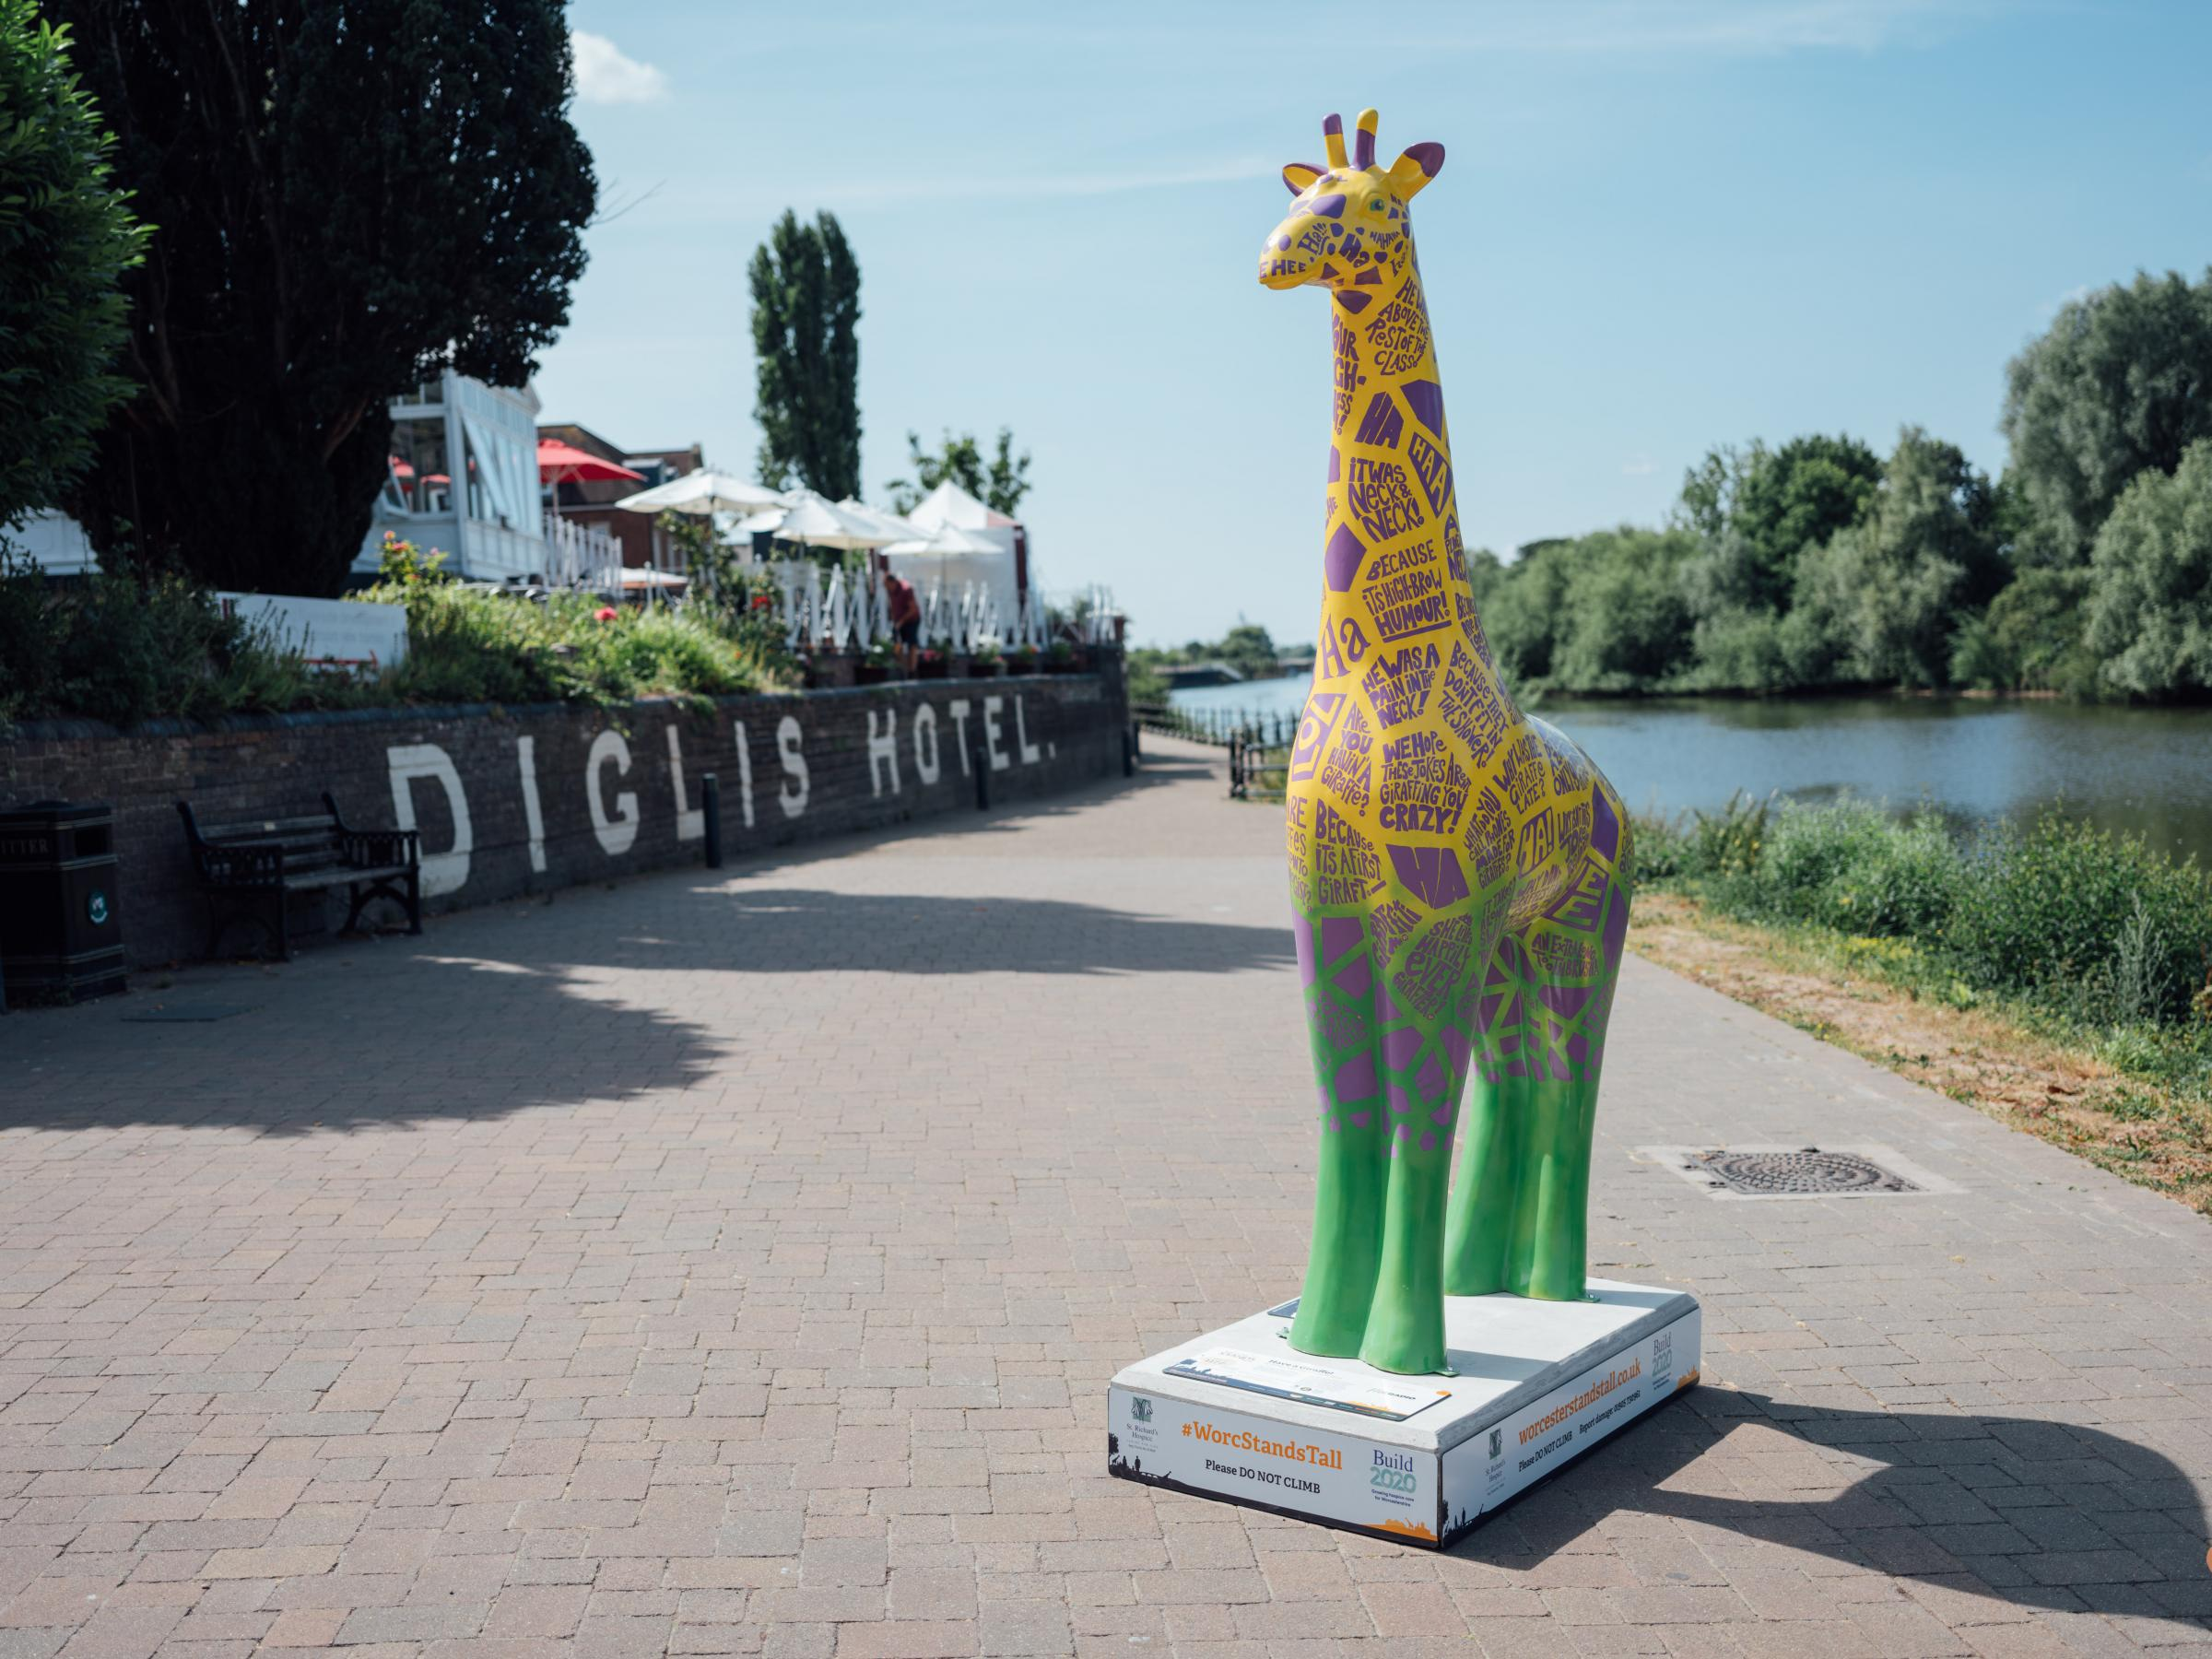 One of the Worcester Stands Tall giraffes